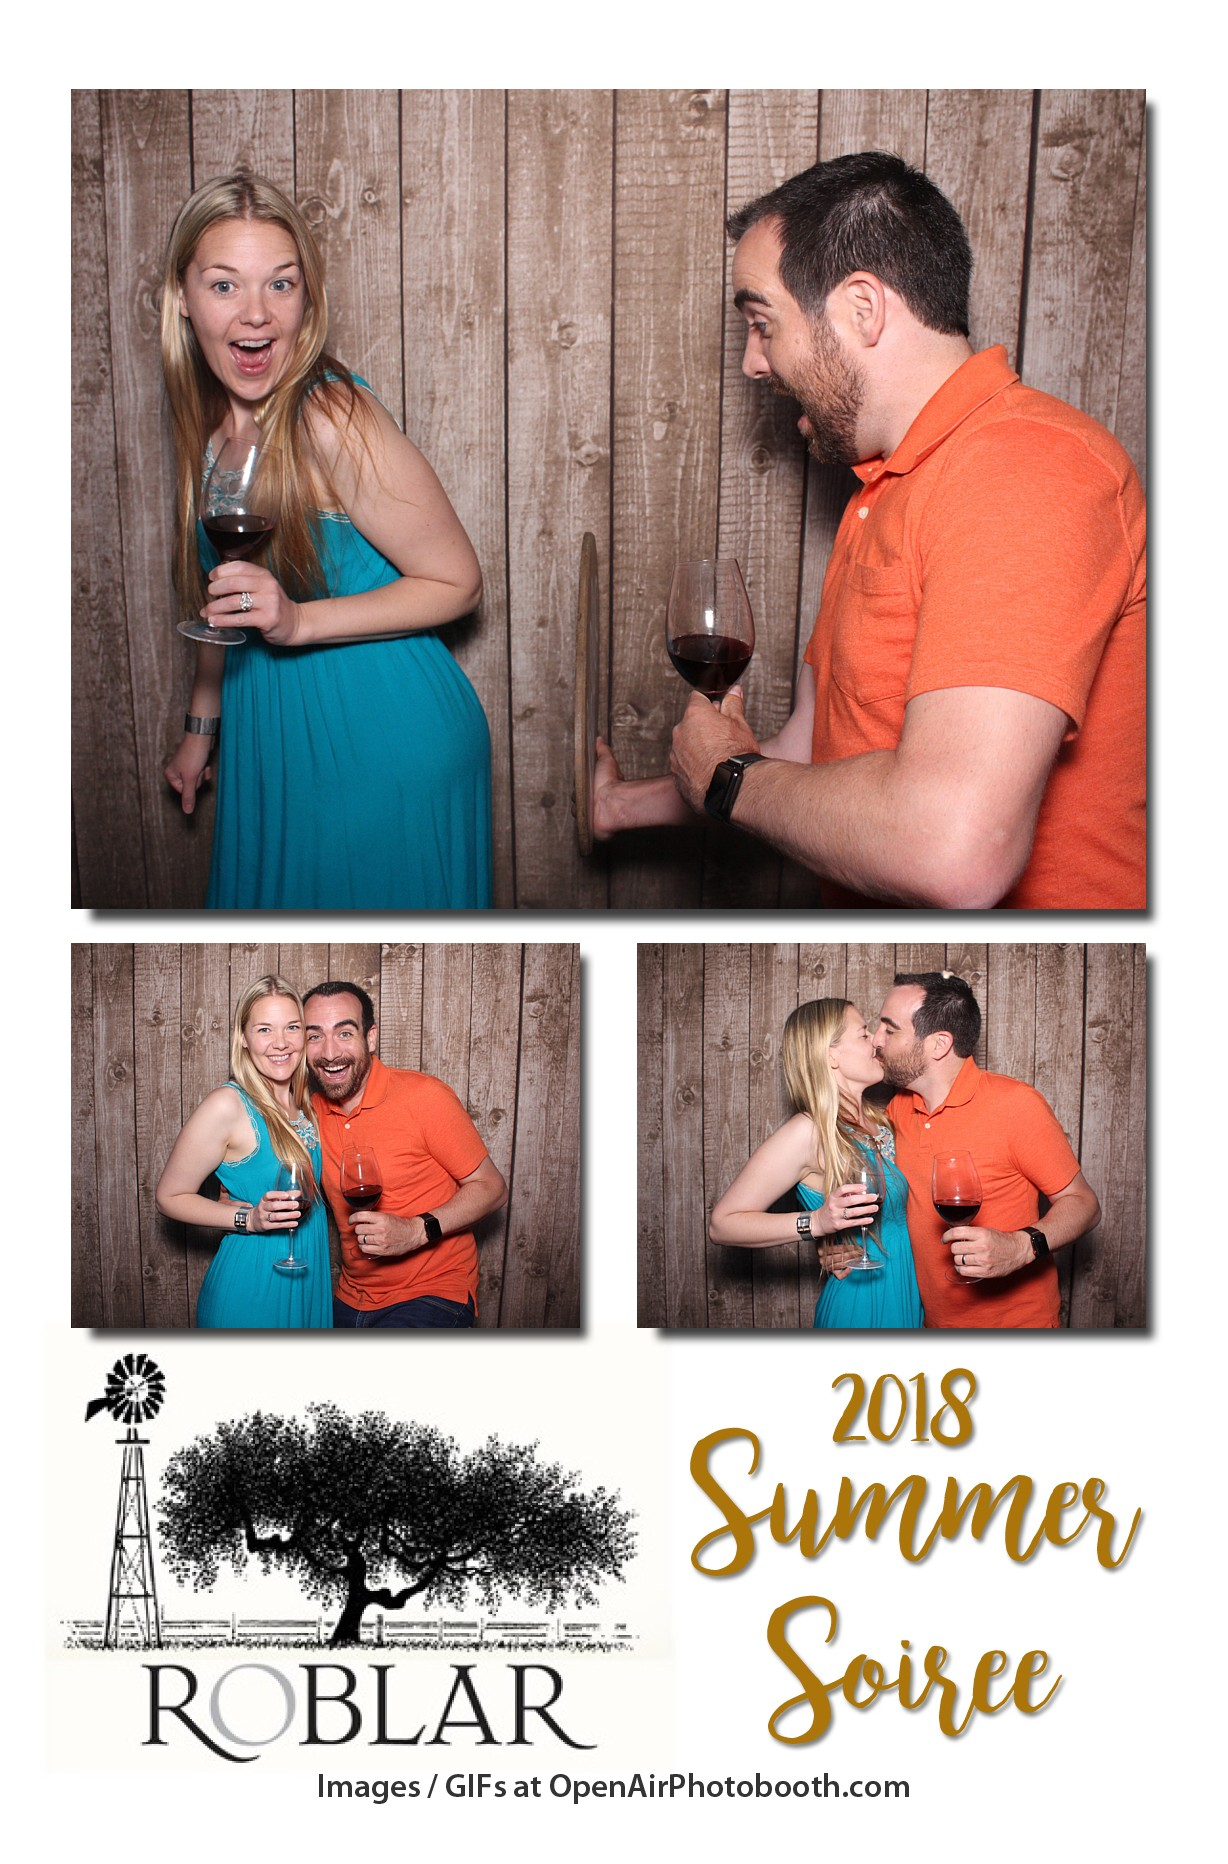 roblar winery photo booth